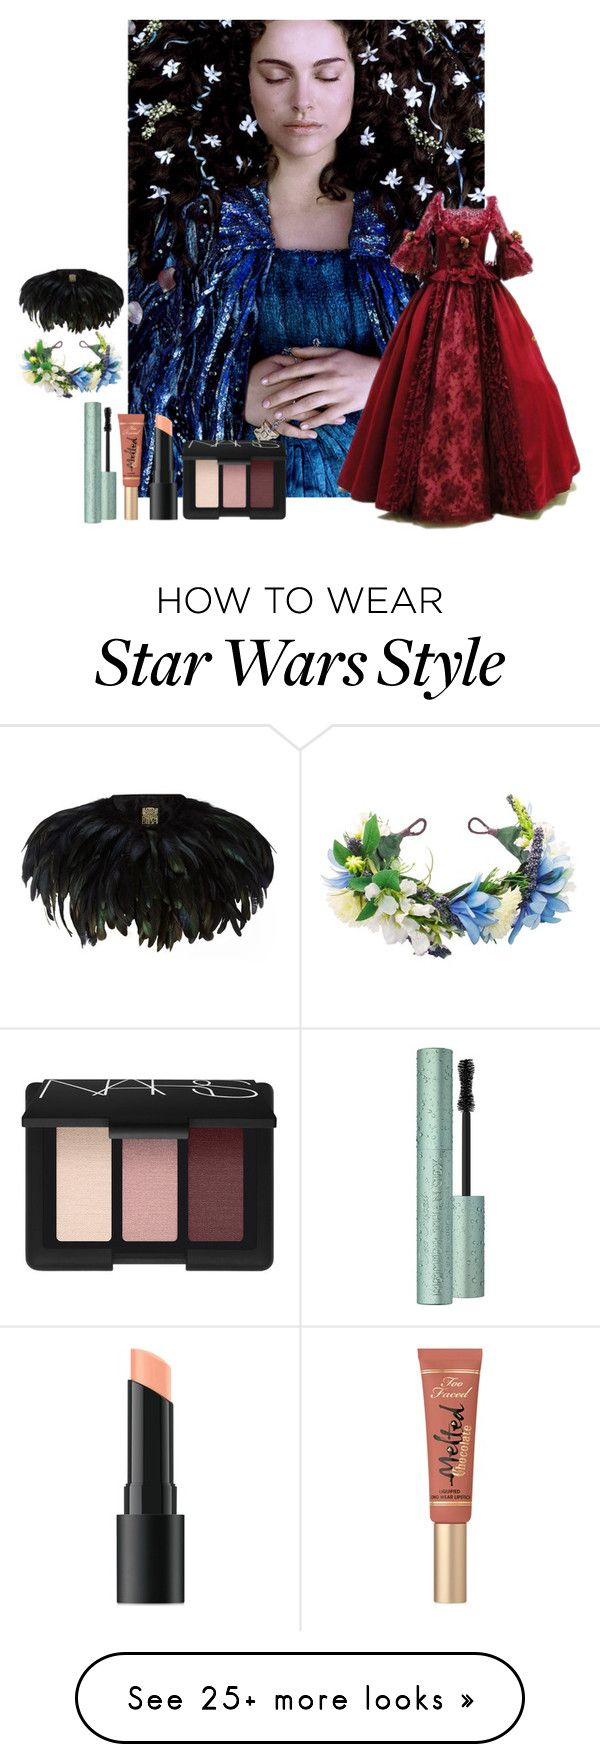 """Dead or alive."" by ofmonstersandmen1 on Polyvore featuring Too Faced Cosmetics, Bare Escentuals, NARS Cosmetics and Biba"